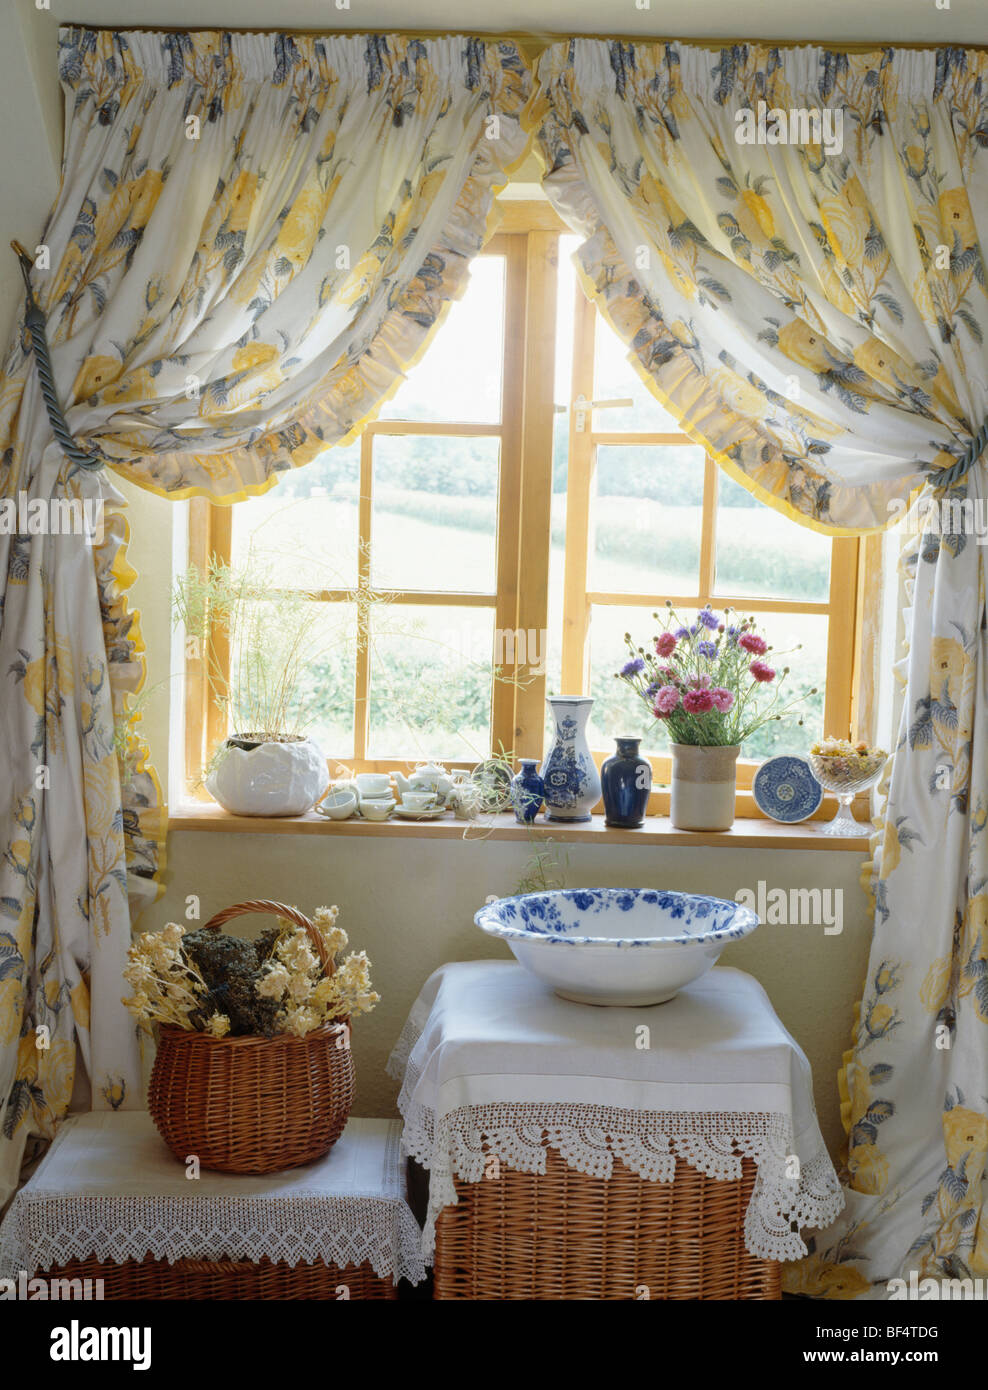 Floral Curtains On Open Casement Window In Cottage Bathroom With Pottery Bowl And Lace Cloth Tall Basket